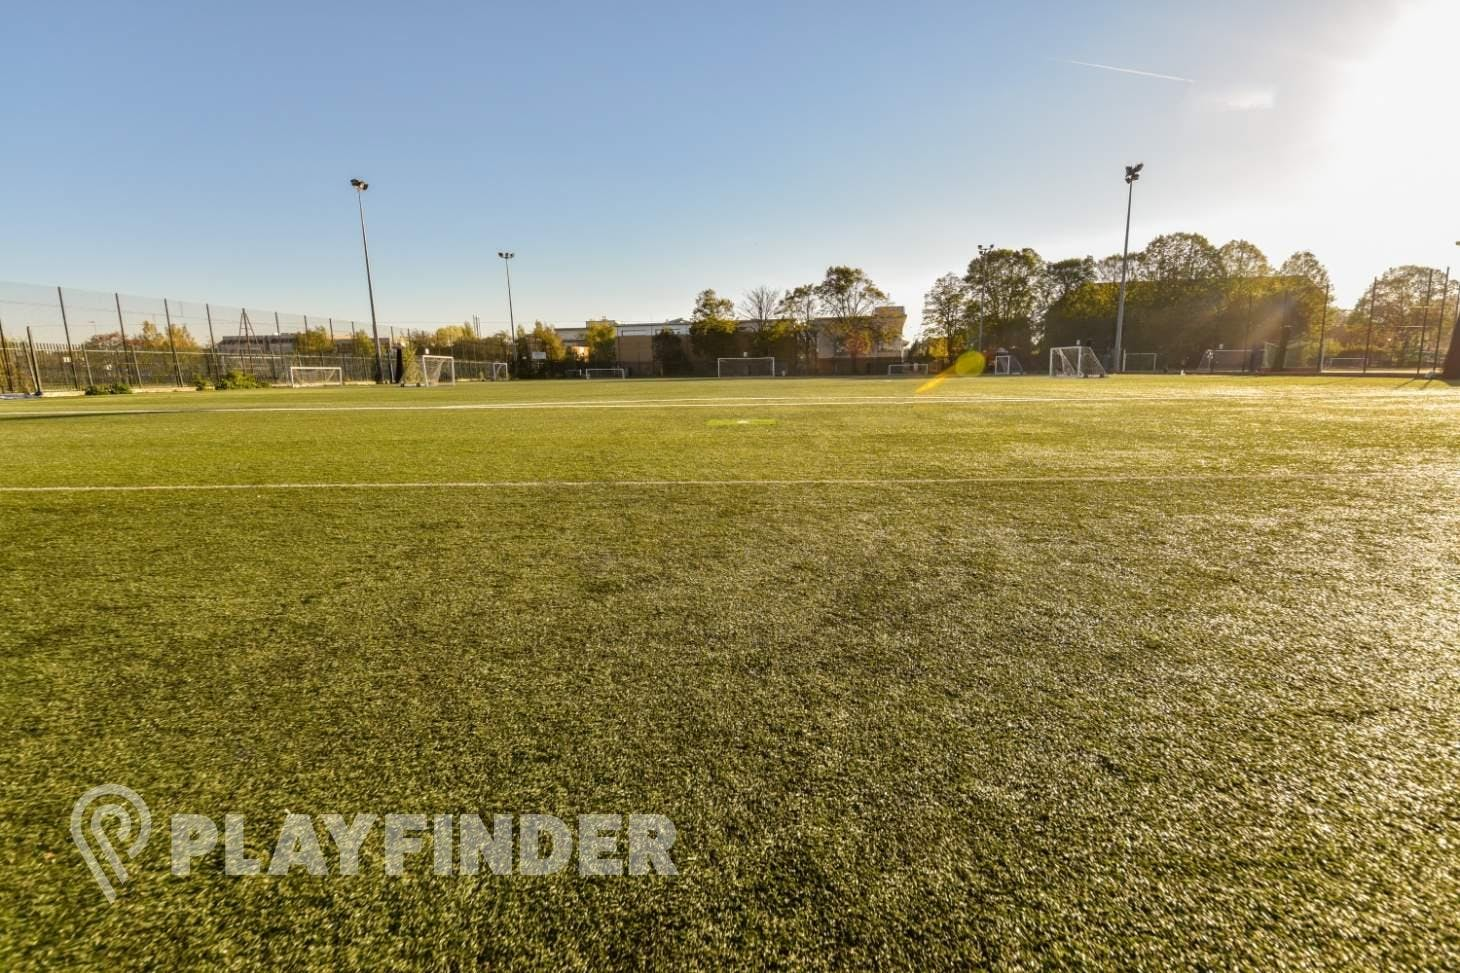 Southbury Leisure Centre 11 a side | 3G Astroturf football pitch